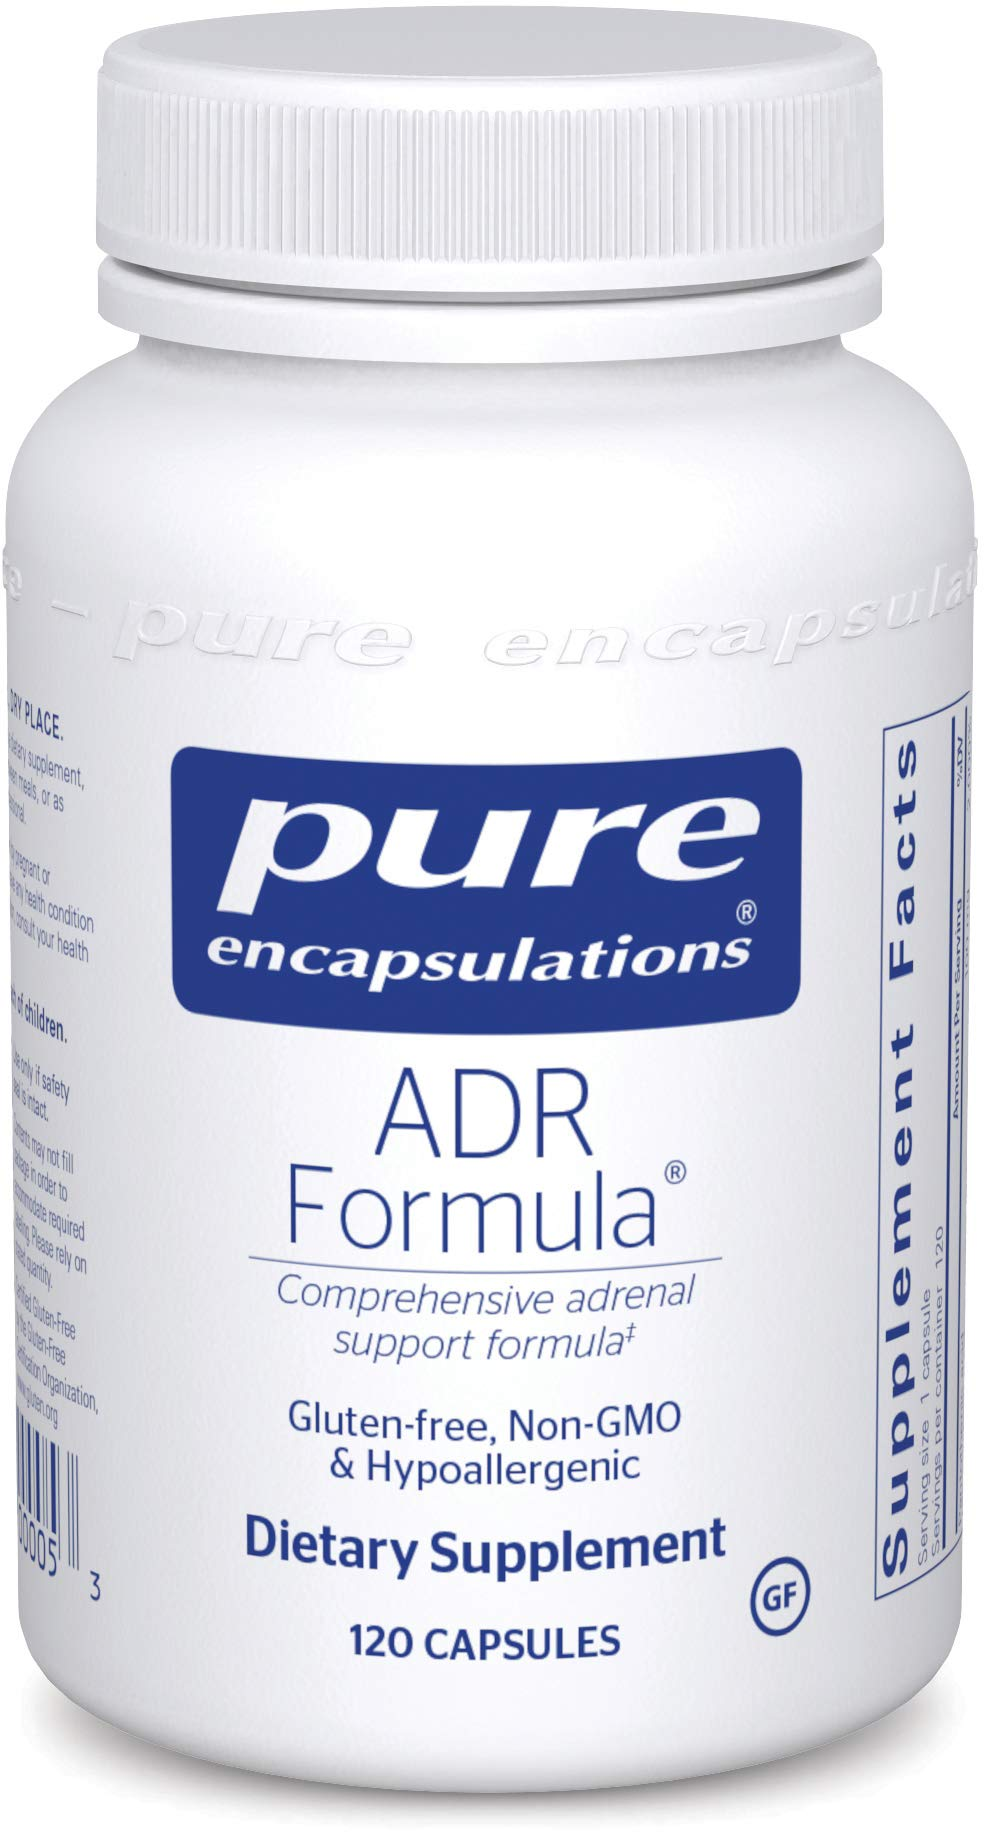 Pure Encapsulations - ADR Formula - Support to Promote Adrenal Gland Function - 120 Capsules